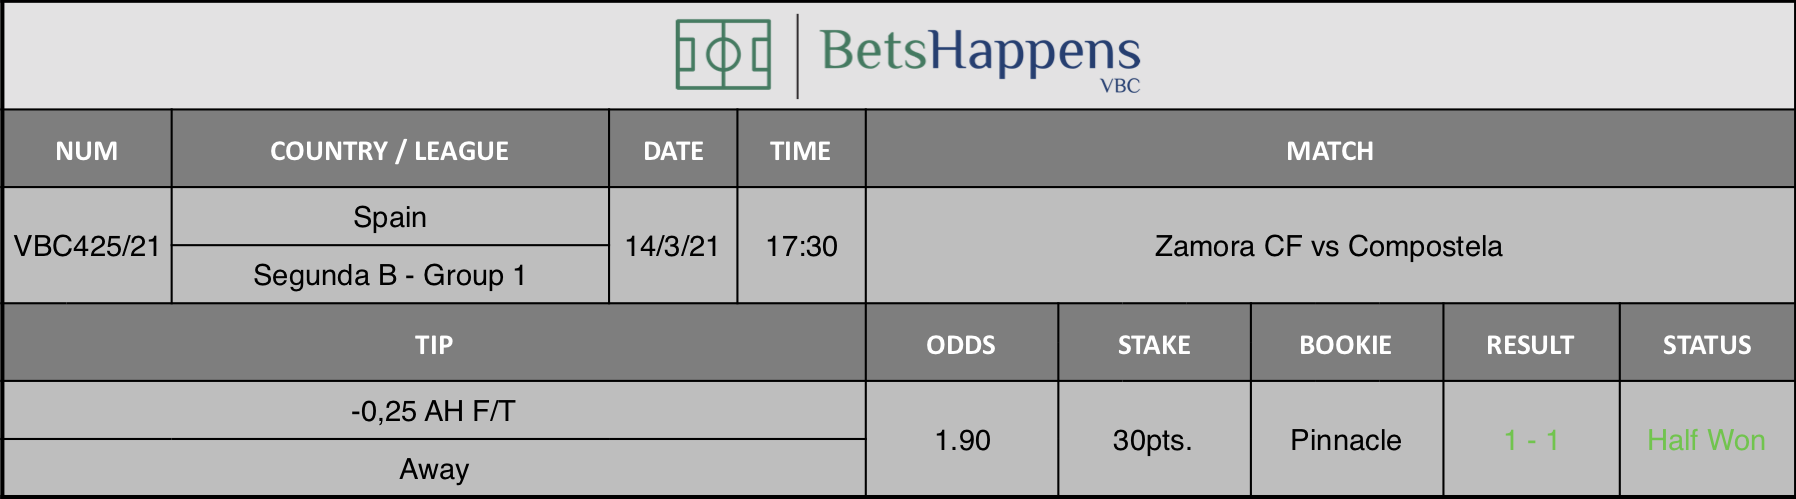 Results of our tip for the Zamora CF vs Compostela match where -0,25 AH F/T  Away is recommended.